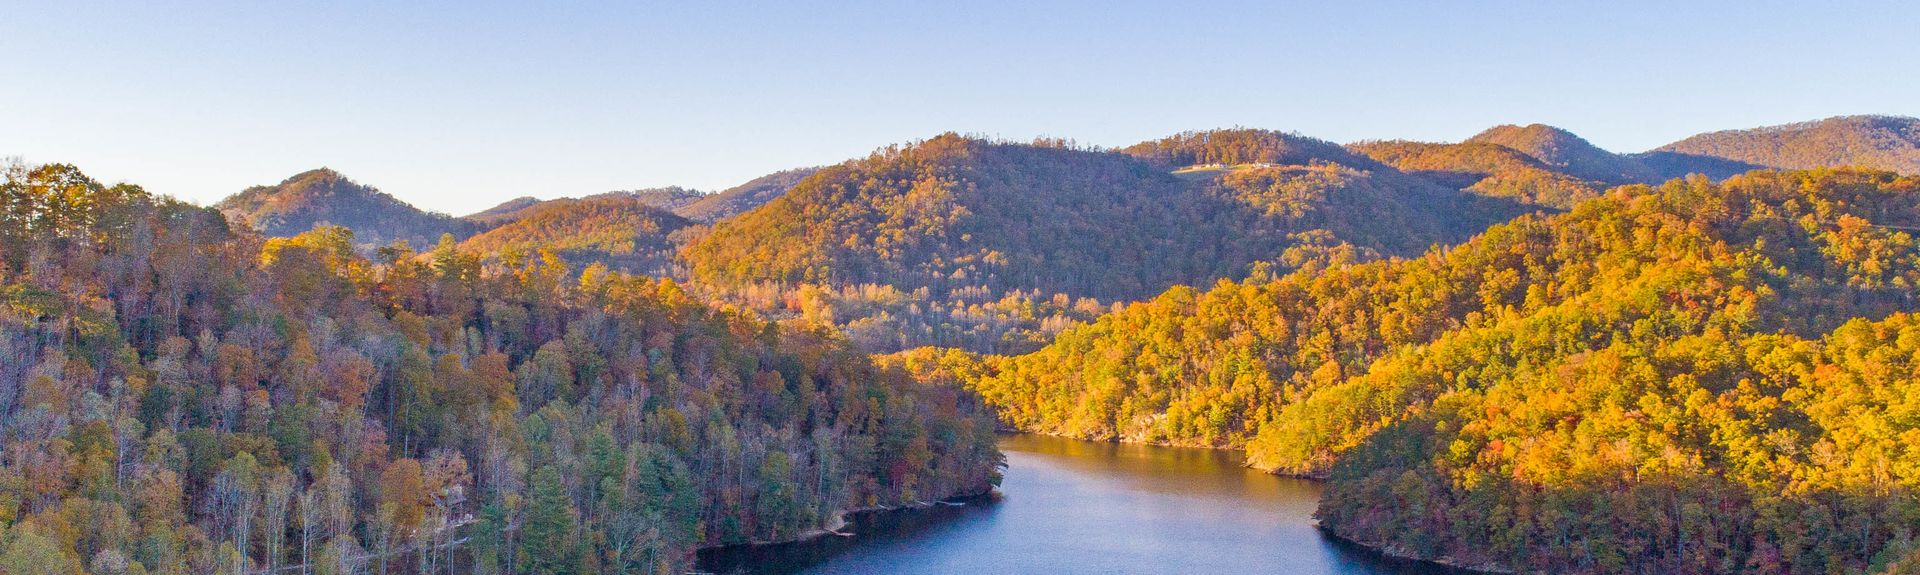 Osceola Lake, Hendersonville, North Carolina, United States of America